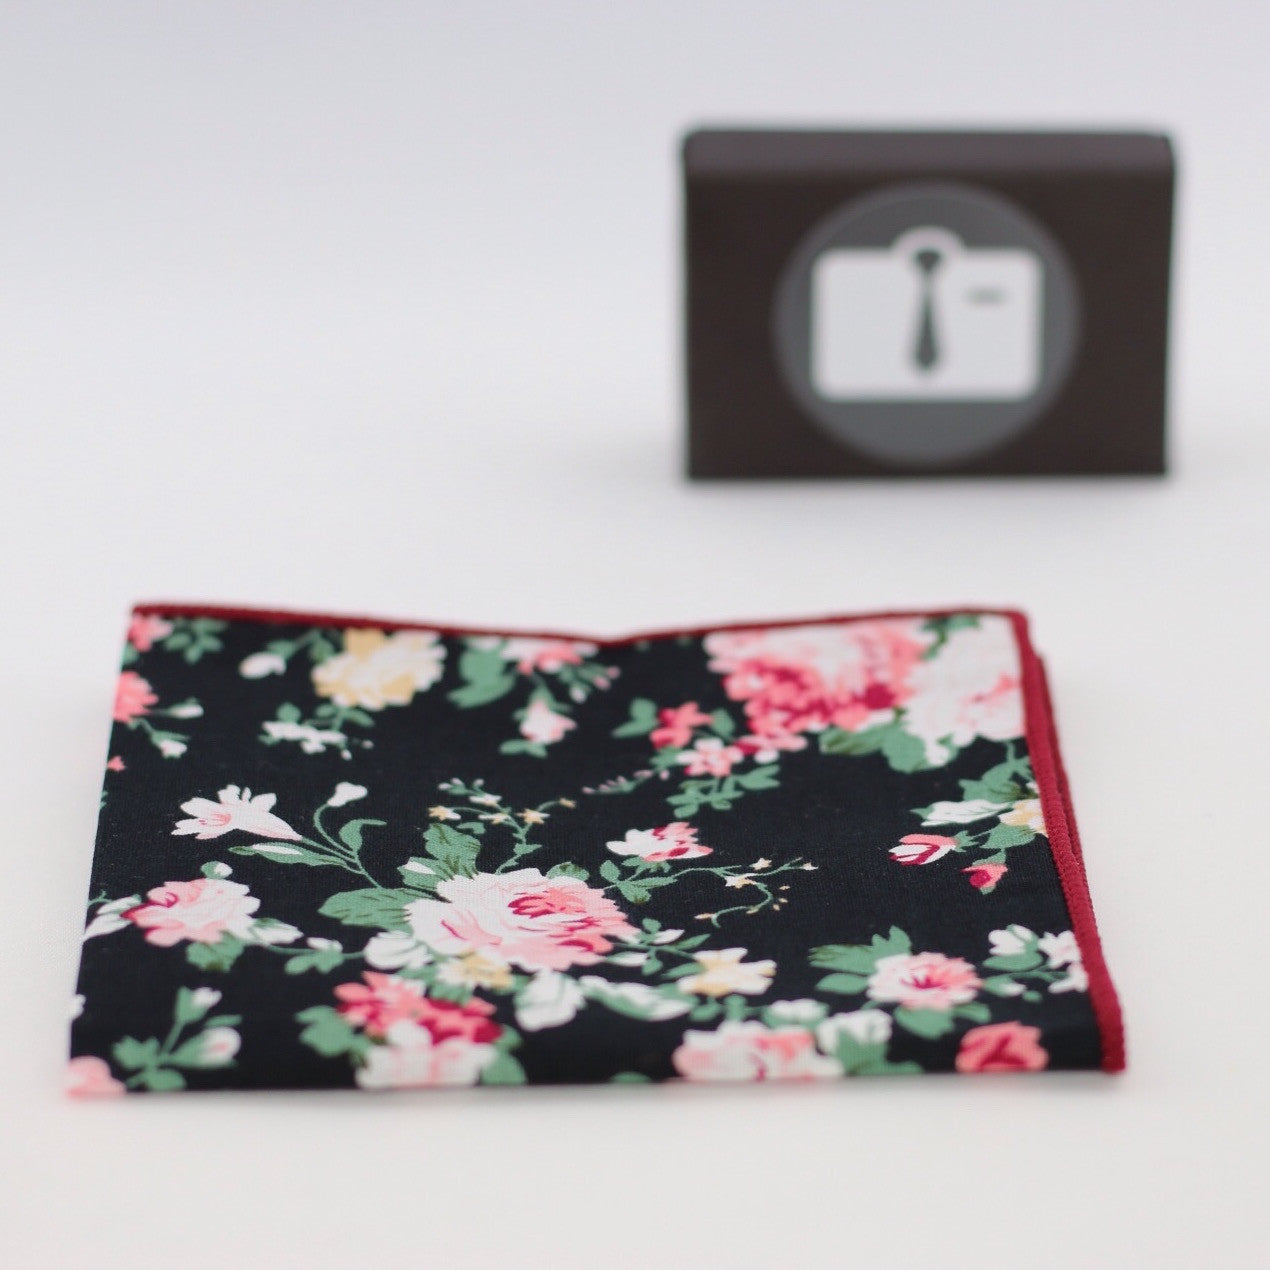 Black Floral Pocket Square With Pink Rose Design